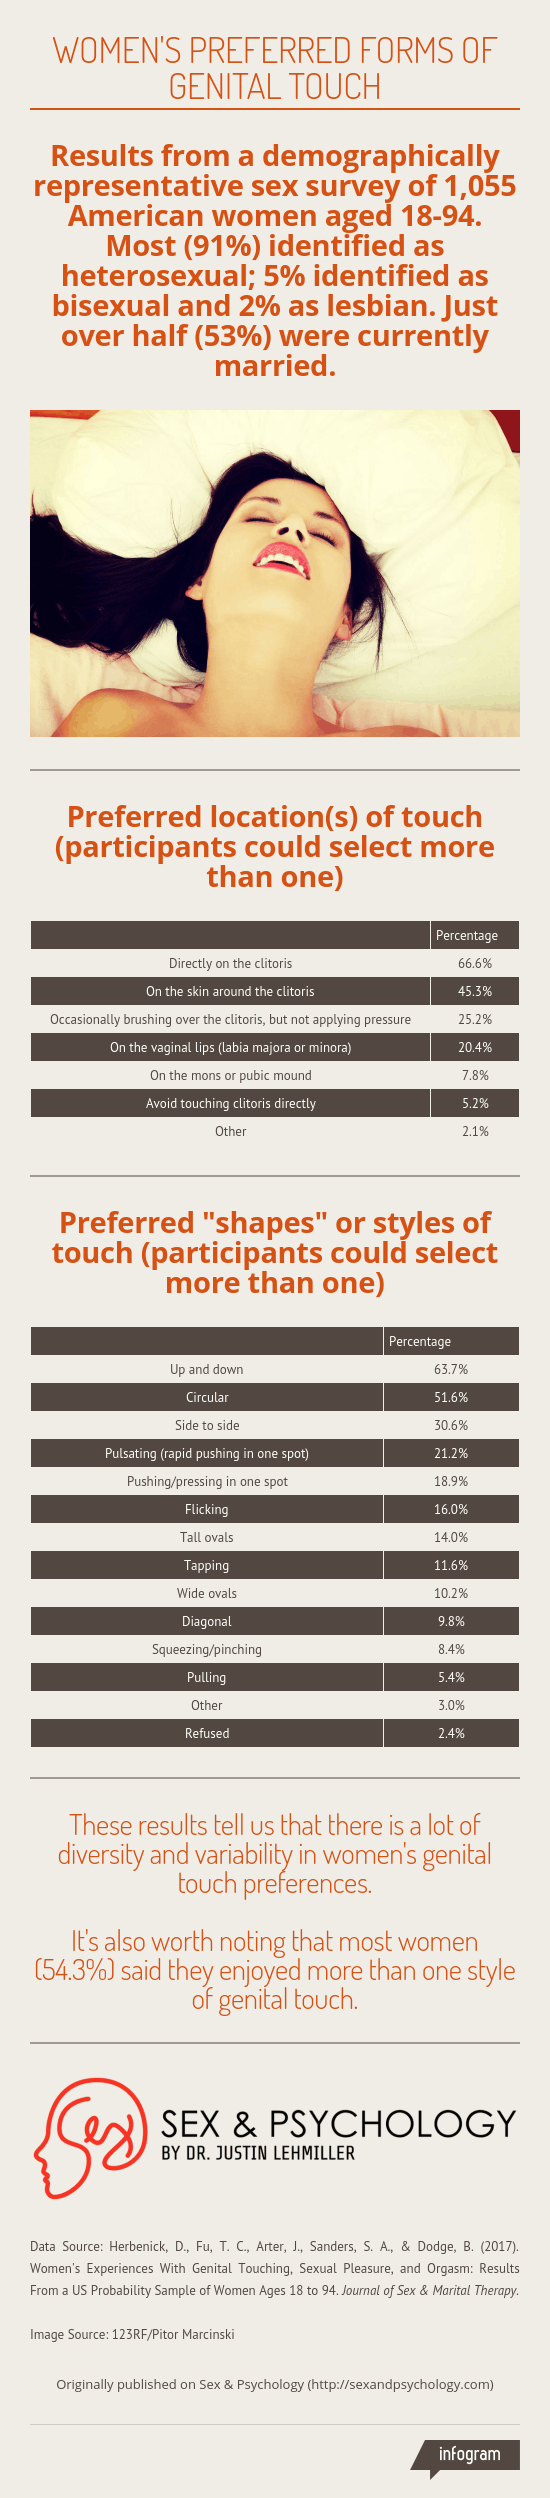 infographic-womens-preferred-genital-touch.png